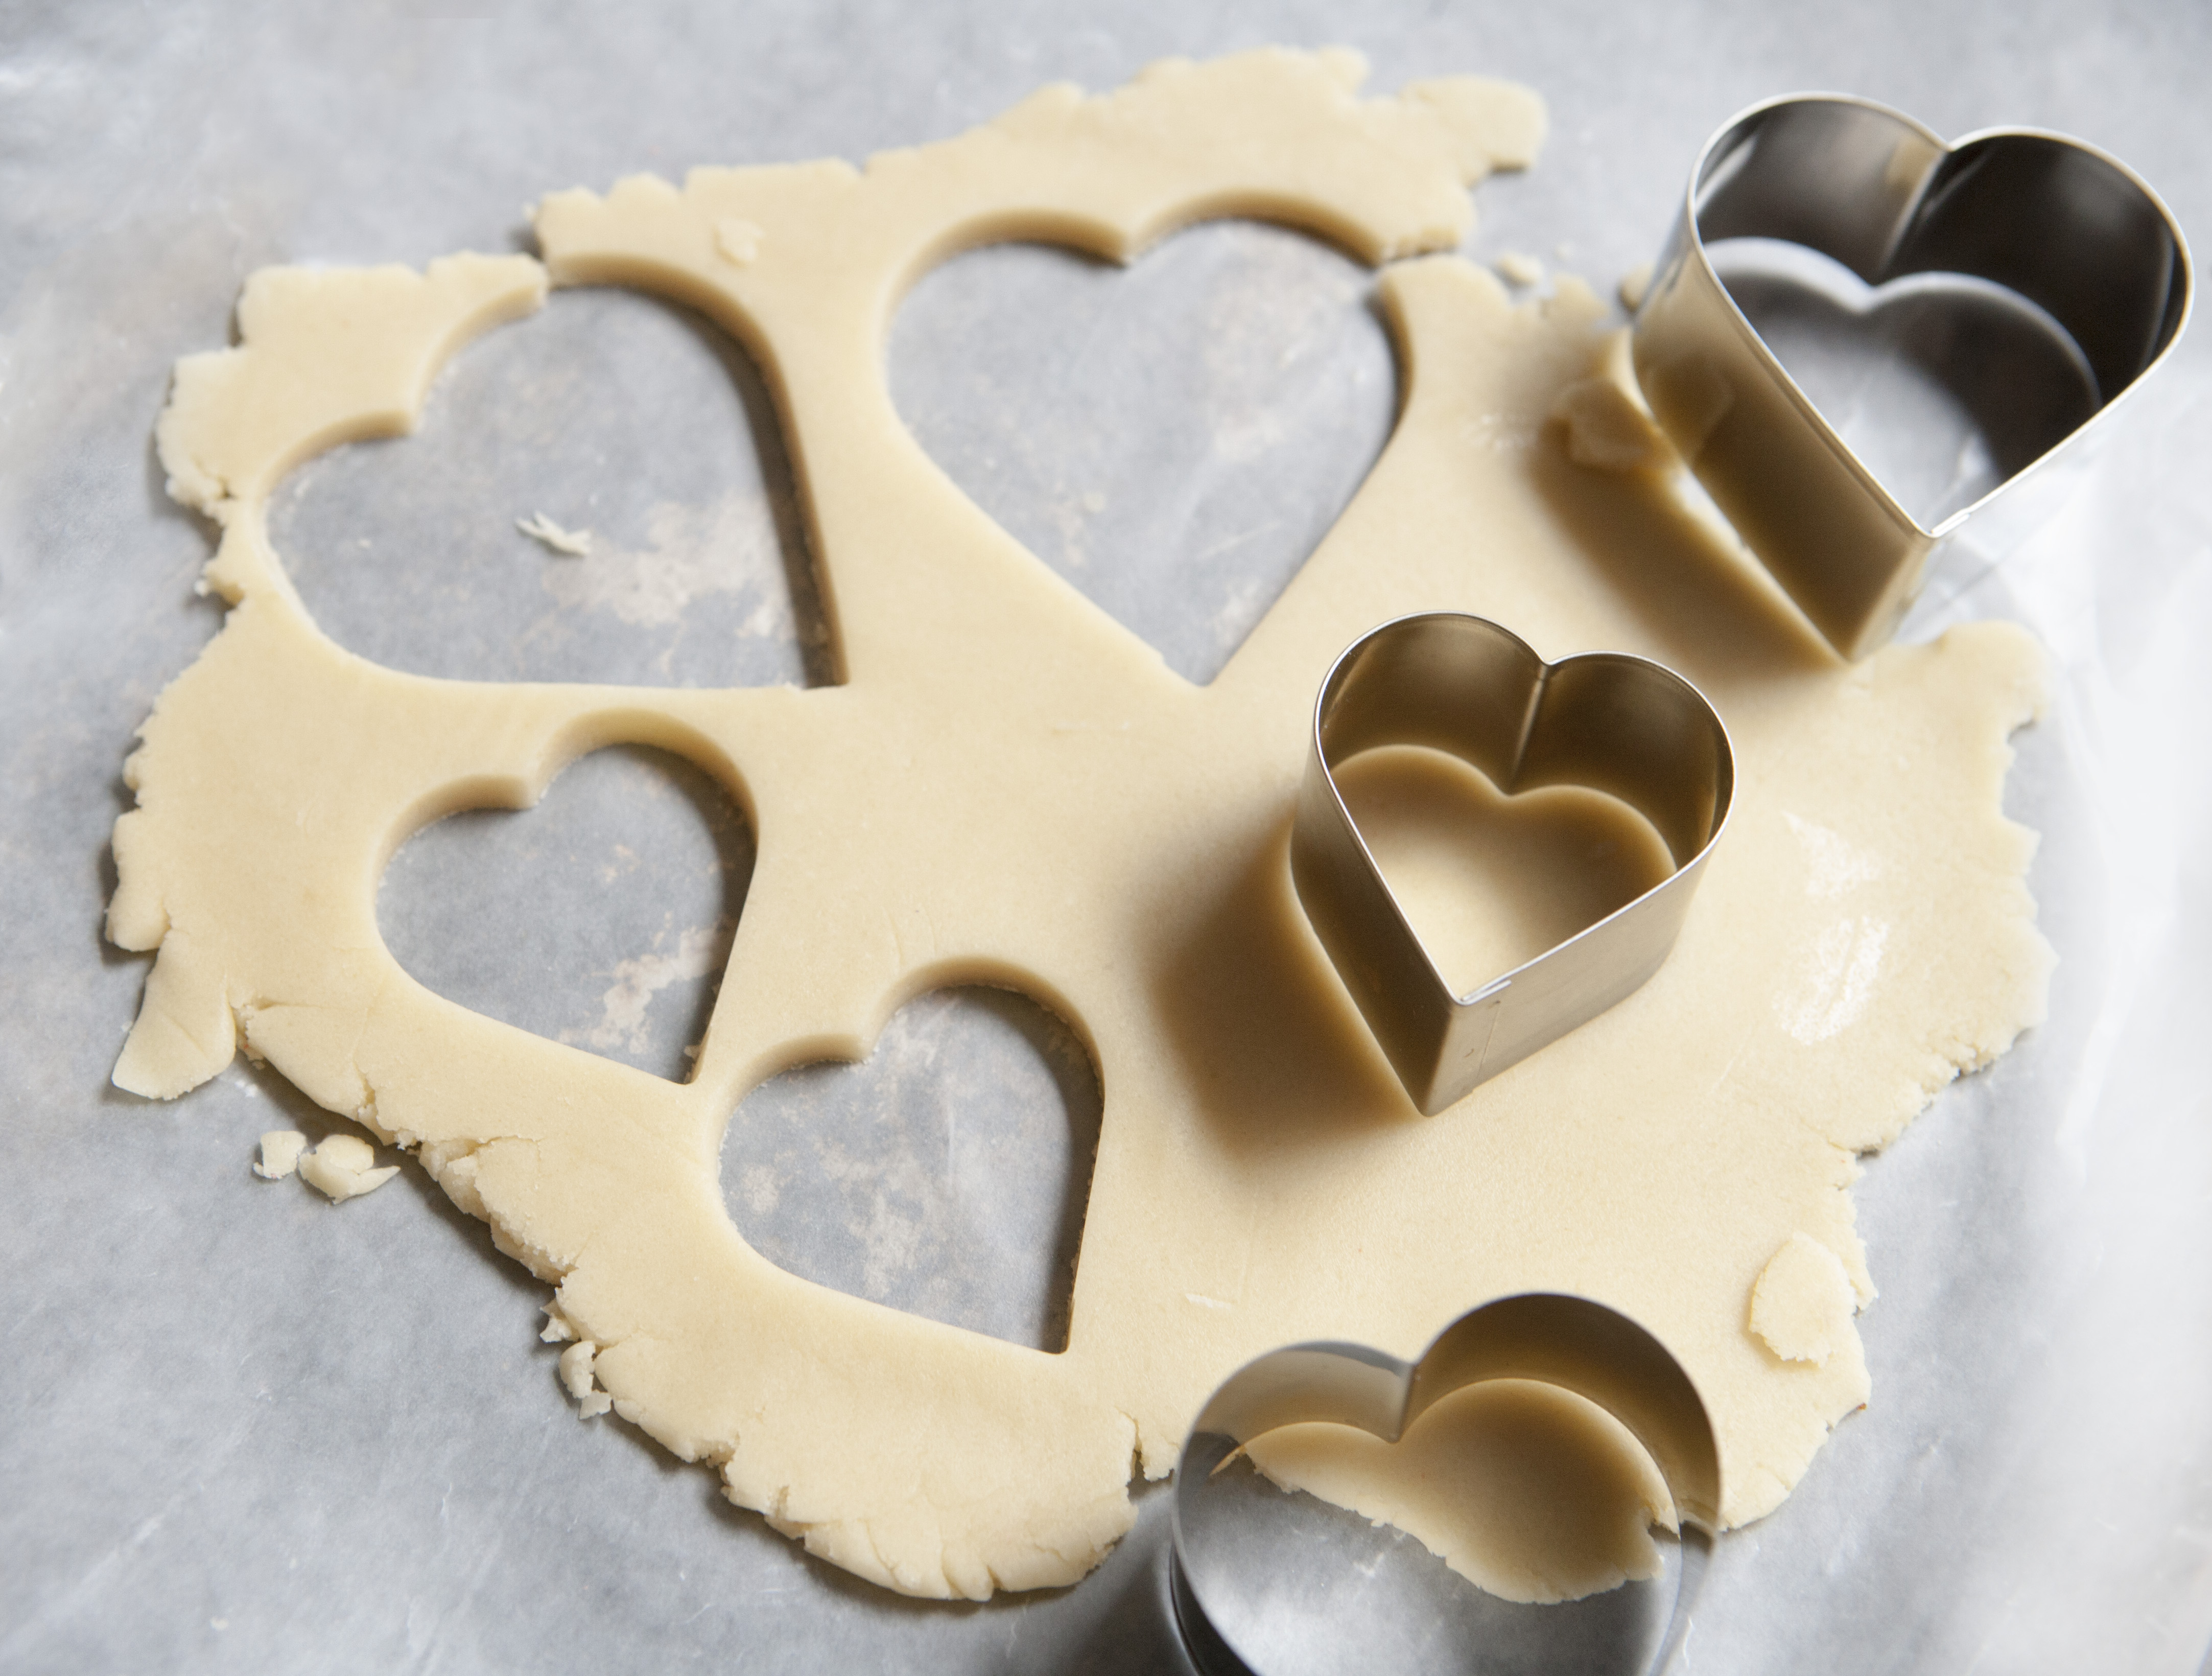 Heart-Shaped Cookie Cutters and Cookie Dough on Wax Paper. (Photo by: Education Images/UIG via Getty Images)